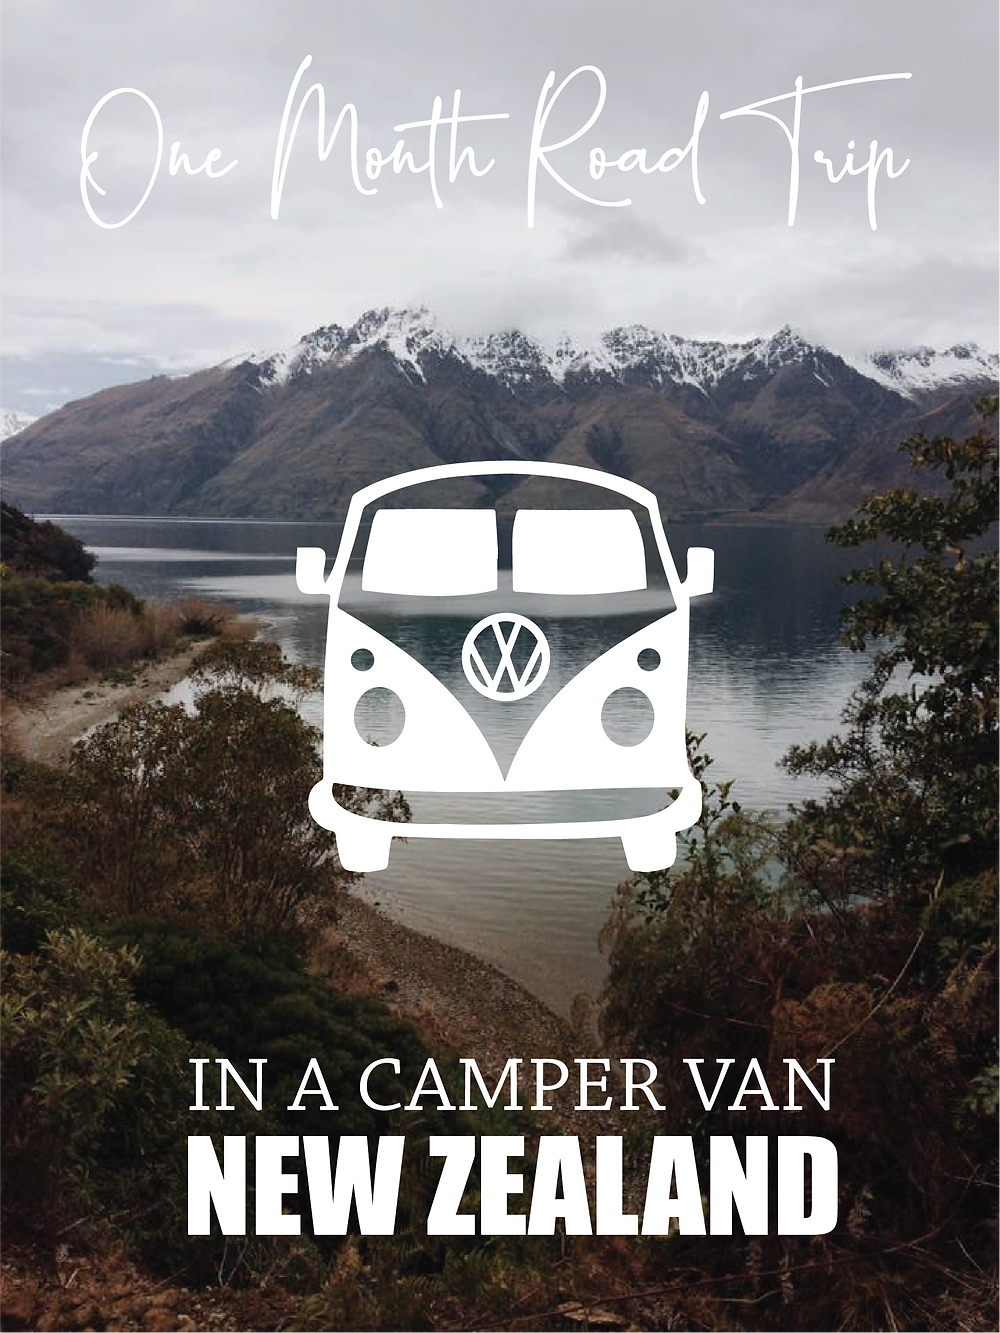 ONE MONTH ROAD TRIP IN A CAMPER VAN ACROSS NEW ZEALAND